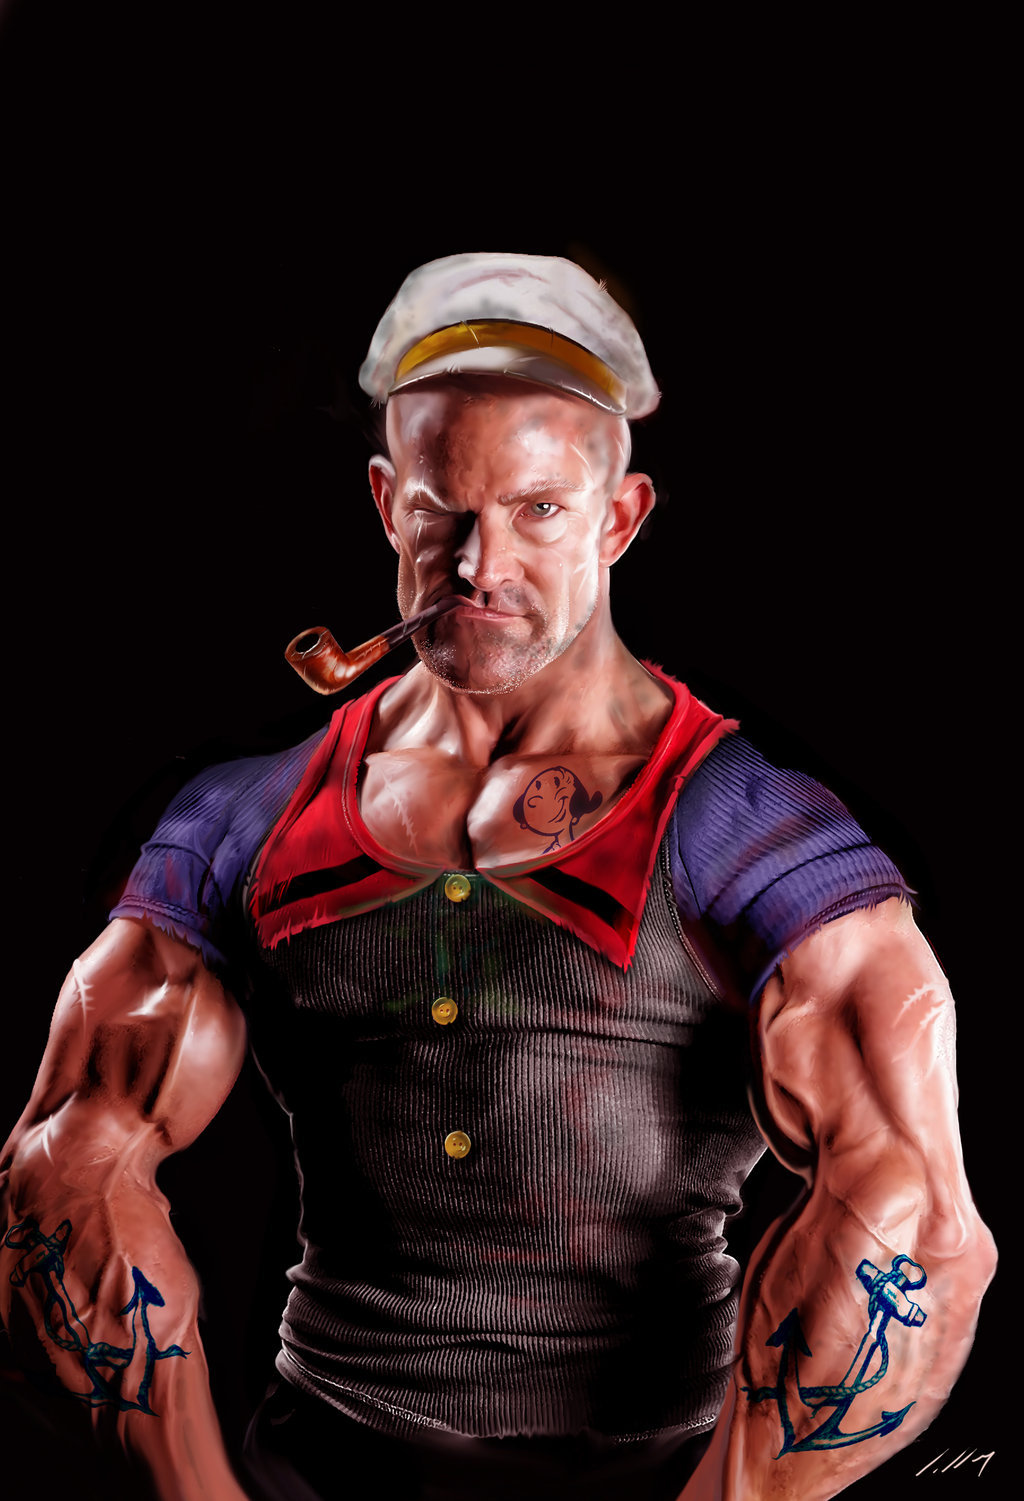 Hyperreal Popeye artwork by Unknown Artist.